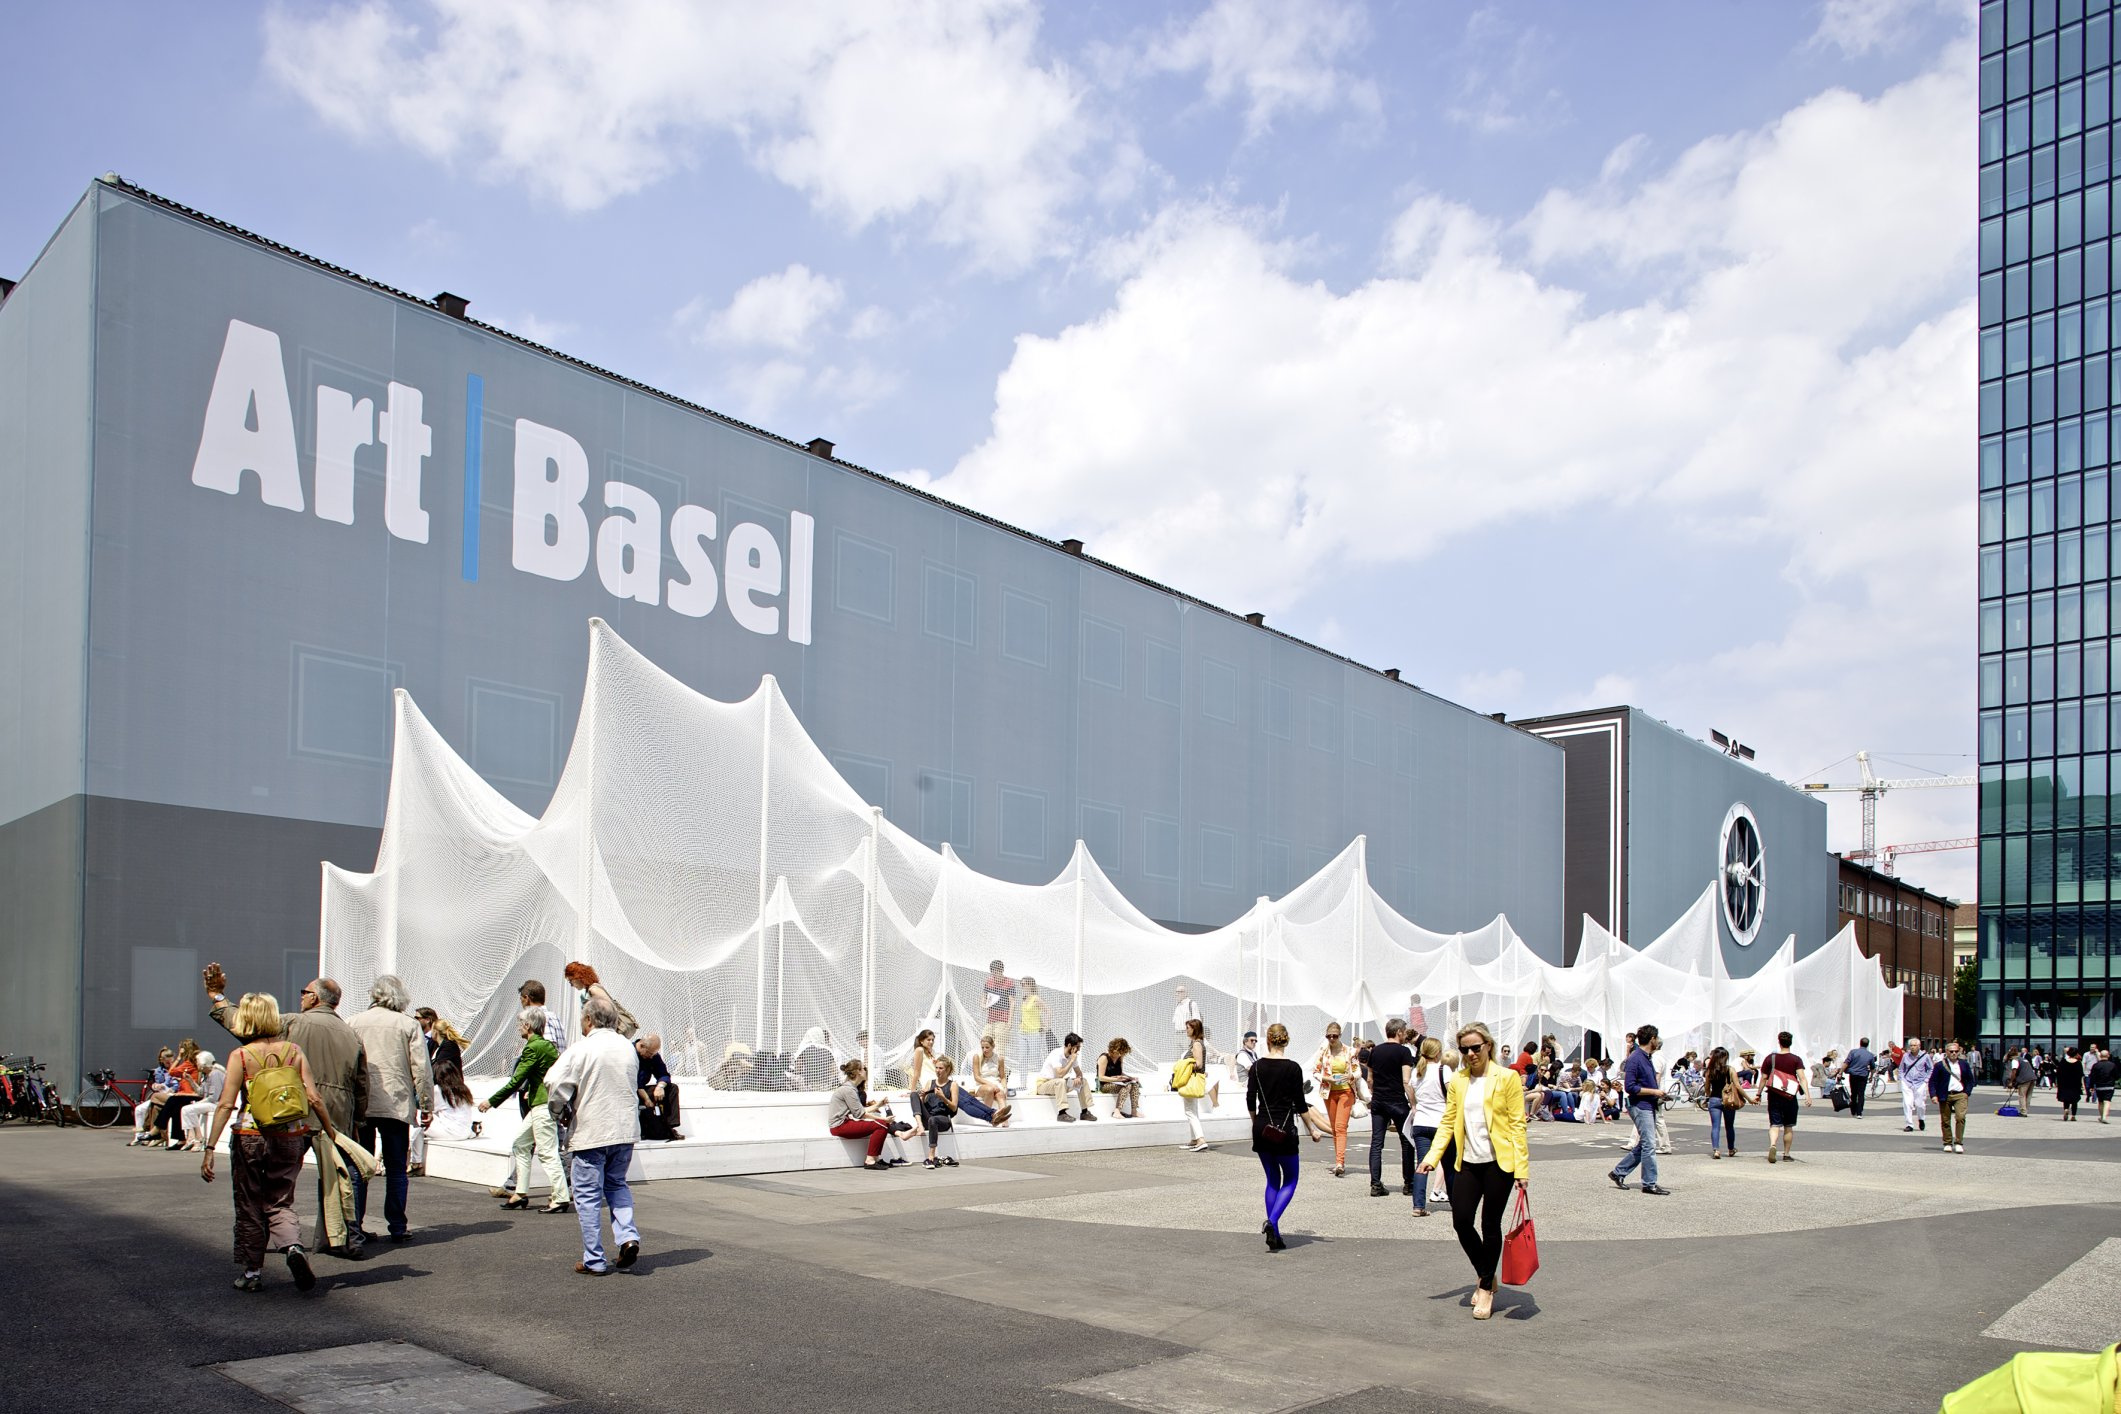 13 Art Basel Miami Beach 2015 Parties and Events to Check Out